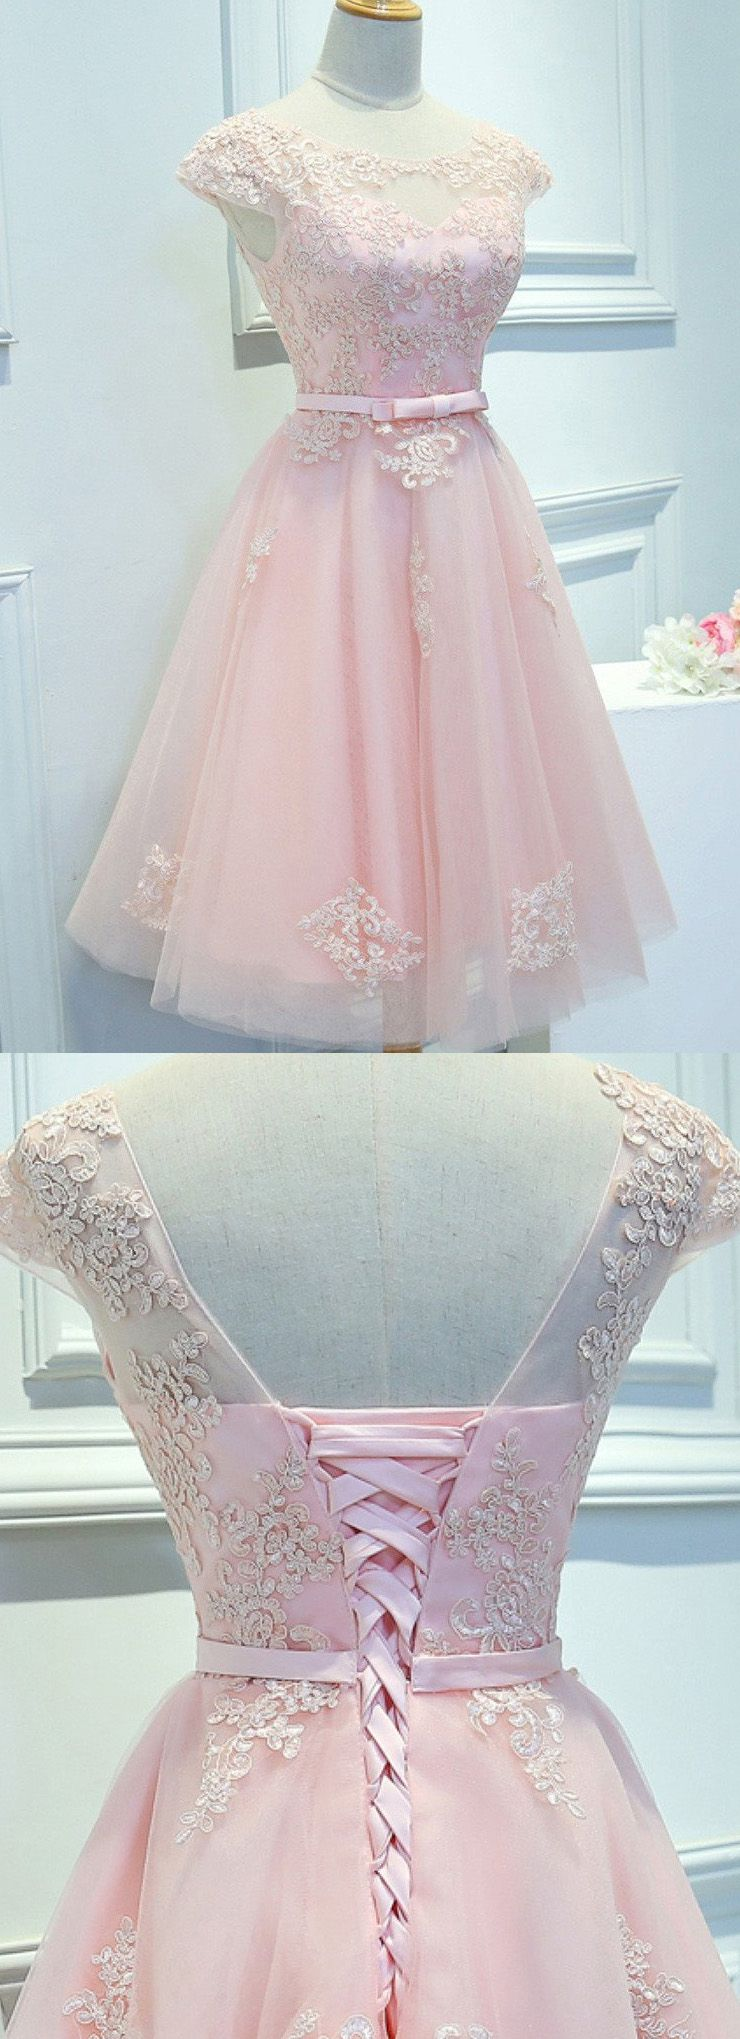 Short Prom Dresses, Lace Prom Dresses, Pink Prom Dresses, Prom Dresses Short, Cap Sleeve Prom dresses, Prom Short Dresses, Lace Homecoming Dresses, Short Sleeve Prom Dresses, Short Pink Prom Dresses, Short Homecoming Dresses, Pink Lace dresses, Cap Sleeve Prom Dresses, Lace Up Homecoming Dresses, Bowknot Homecoming Dresses